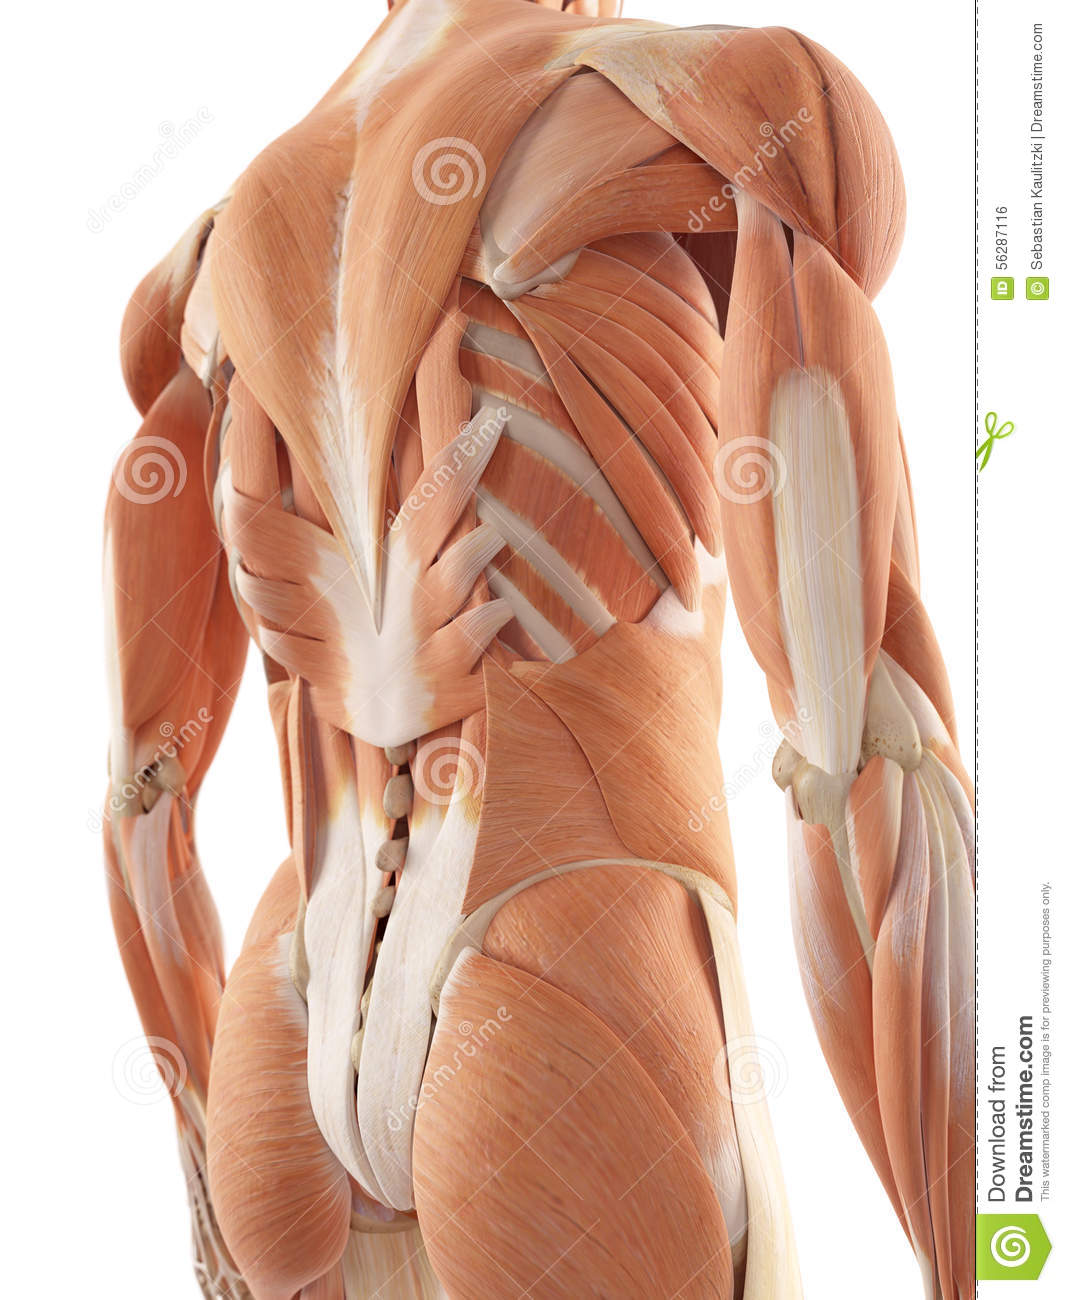 The Back Muscles Stock Illustration Illustration Of